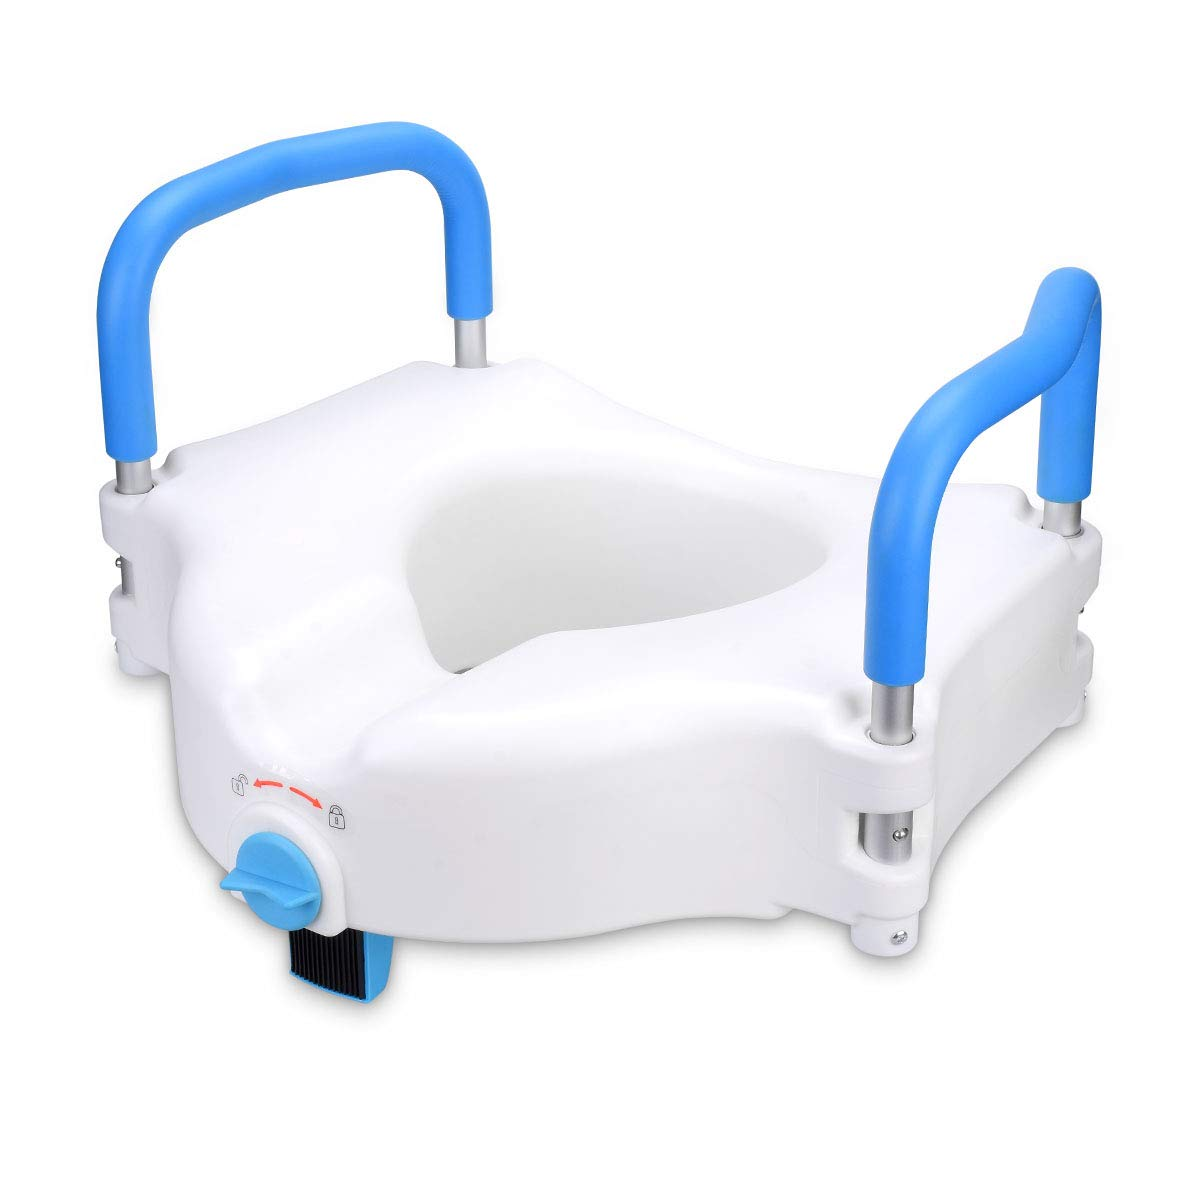 Health Line 5'' Elevated Raised Toilet Seat Commode Seat Riser Lifter, with Removable Padded Grab Bar Handles & Locking Mechanism, Portable and Sturdy for Handicapped, Elderly and Seniors by HEALTH LINE MASSAGE PRODUCTS